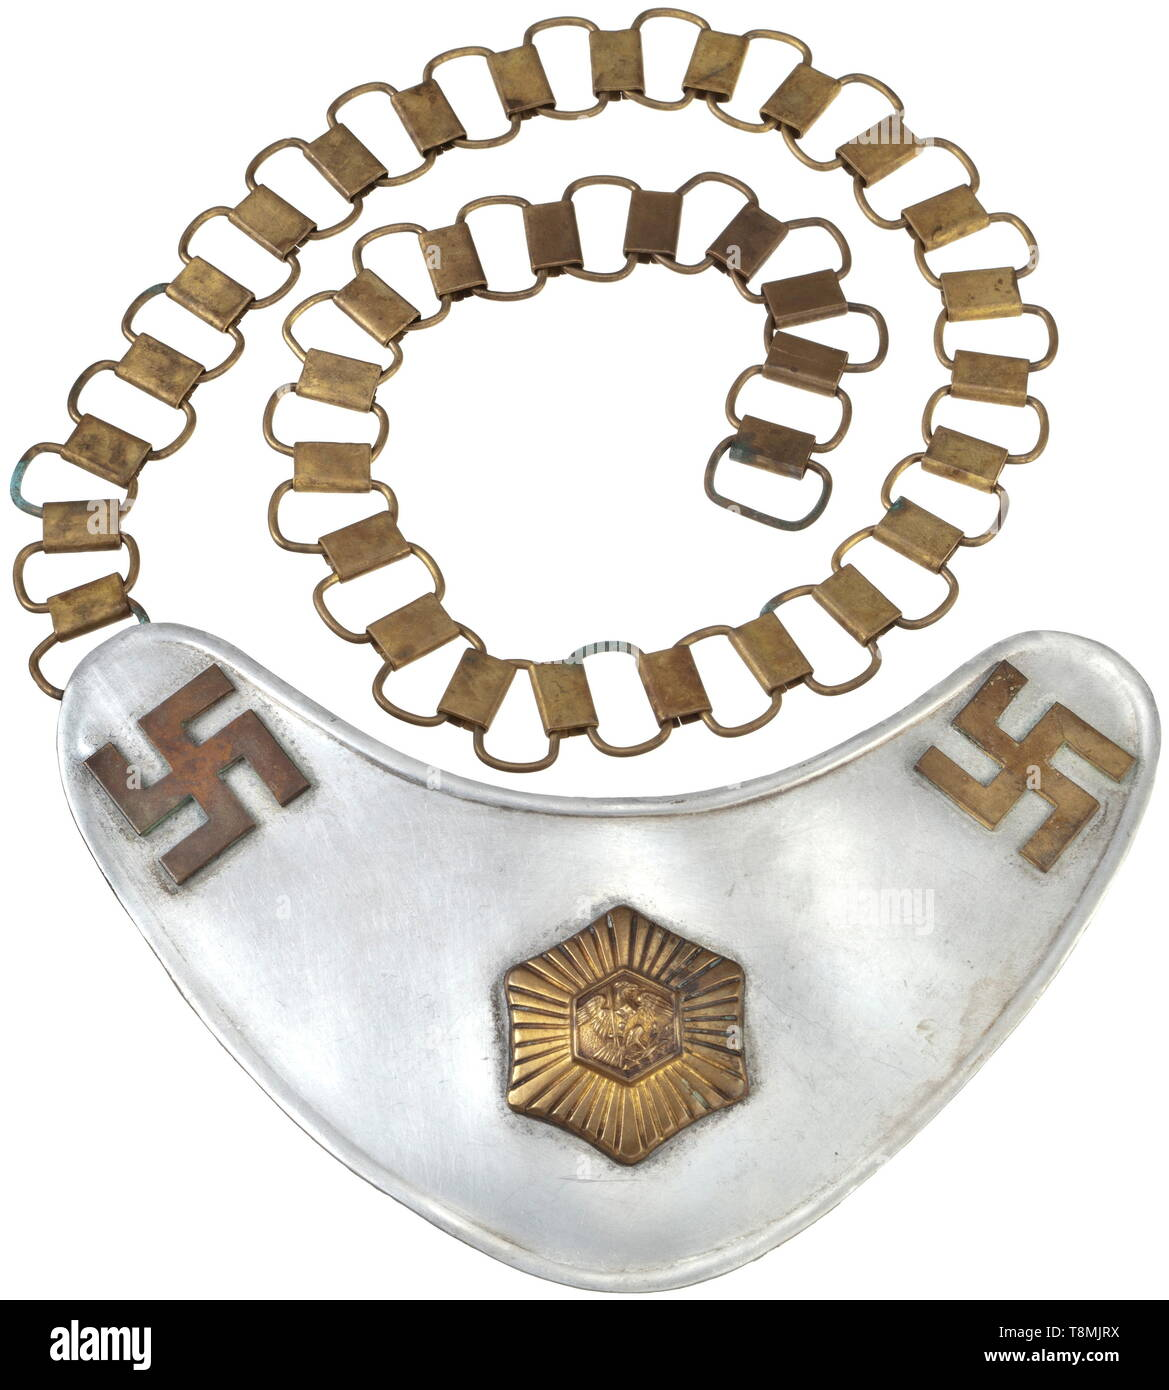 A gorget of the SA-Feldjägerkorps Kidney-shaped aluminium shield with gilt, screw affixed non-ferrous metal appliqués, centrally the star of the Prussian police and swastikas at the corners. The reverse with the original dark backing, at the left an RZM stamped bracket on which to hook the brass chain. Inexpertly cleaned. historic, historical, 20th century, 1930s, 1940s, storm battalion, stormtroopers, armed and uniformed branch of the NSDAP, organisation, organization, organizations, organisations, NS, National Socialism, Nazism, Third Reich, German Reich, Germany, fascism, Editorial-Use-Only - Stock Image